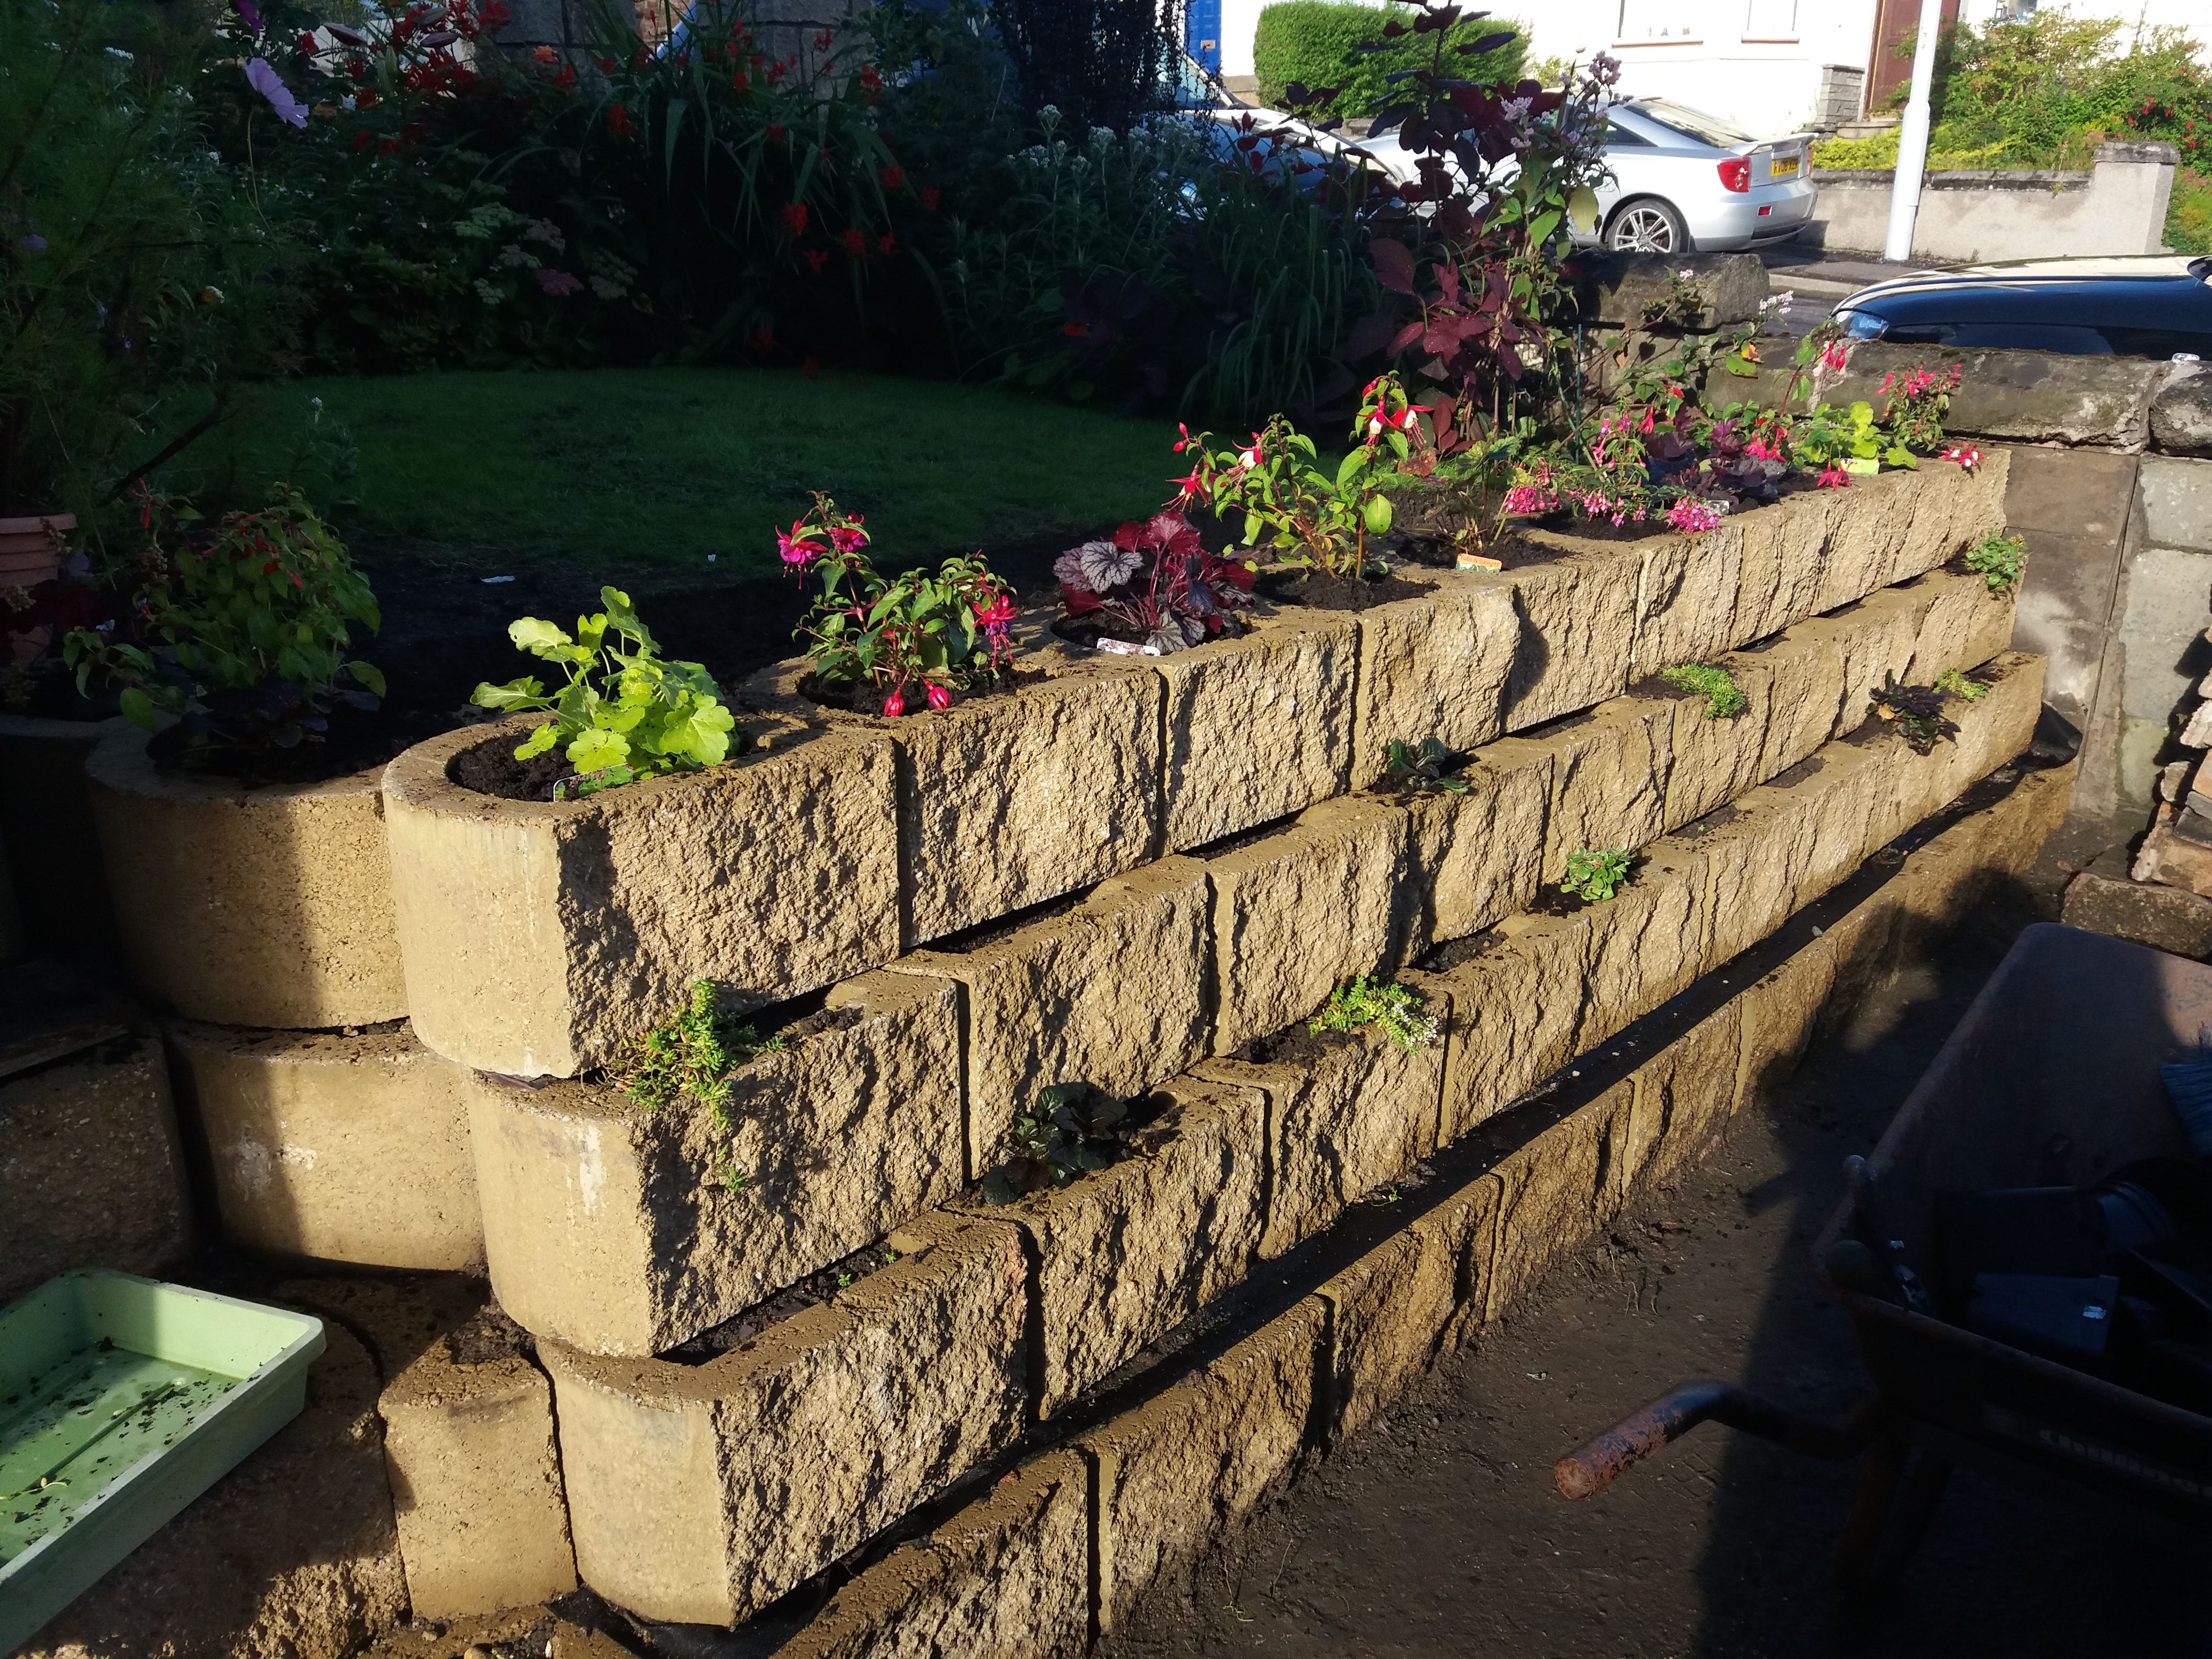 The Terraforce Garden Wall Block Is Suitable For Plants To Make It A Living Wall Garden Wall Garden Wall Block Garden Soil